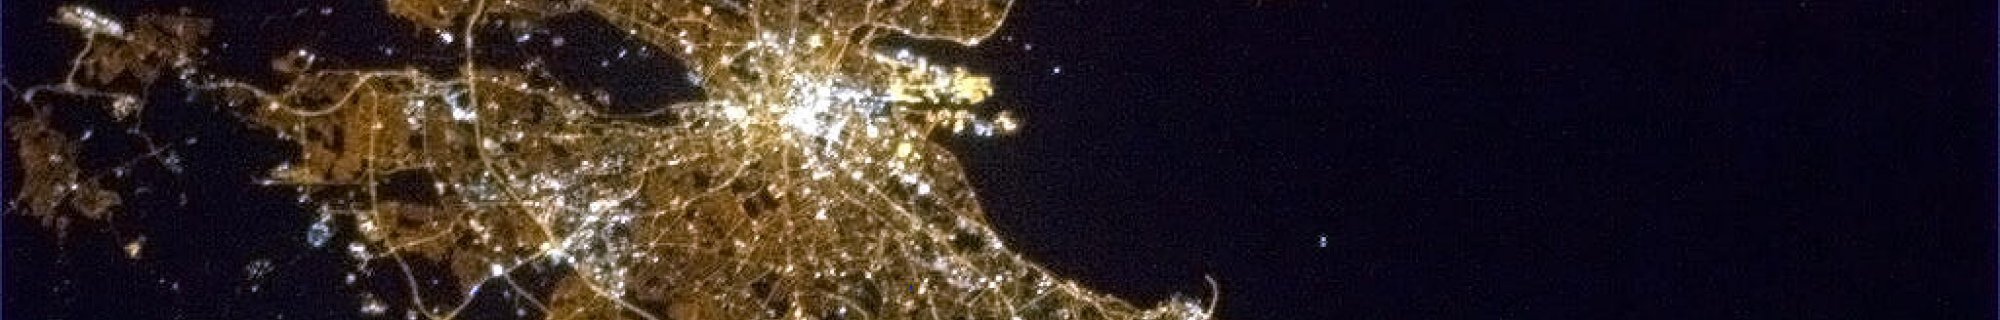 Dublin from International Space Station April 2013